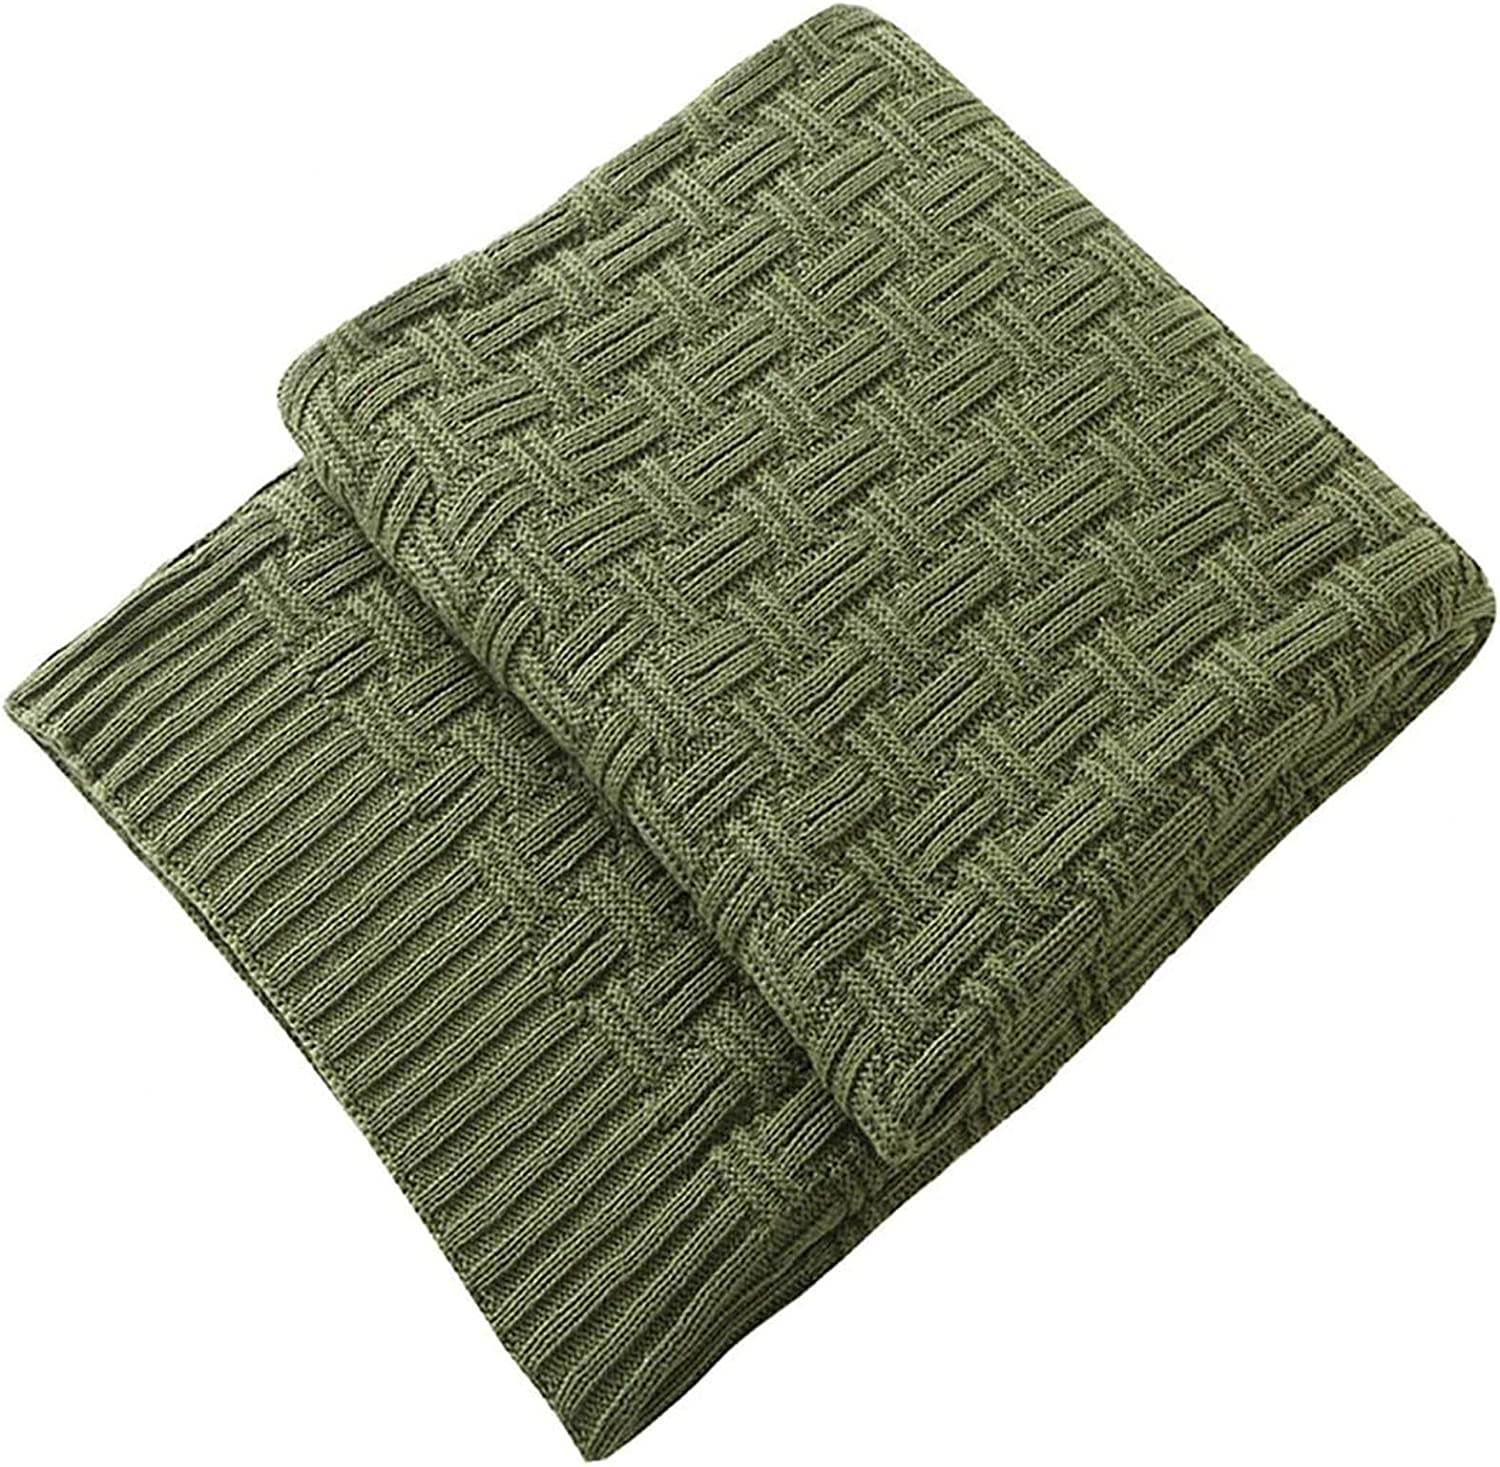 TREELY 100% Daily bargain sale Cotton Knitted Our shop OFFers the best service Throw Cover Blanket 60 Couch